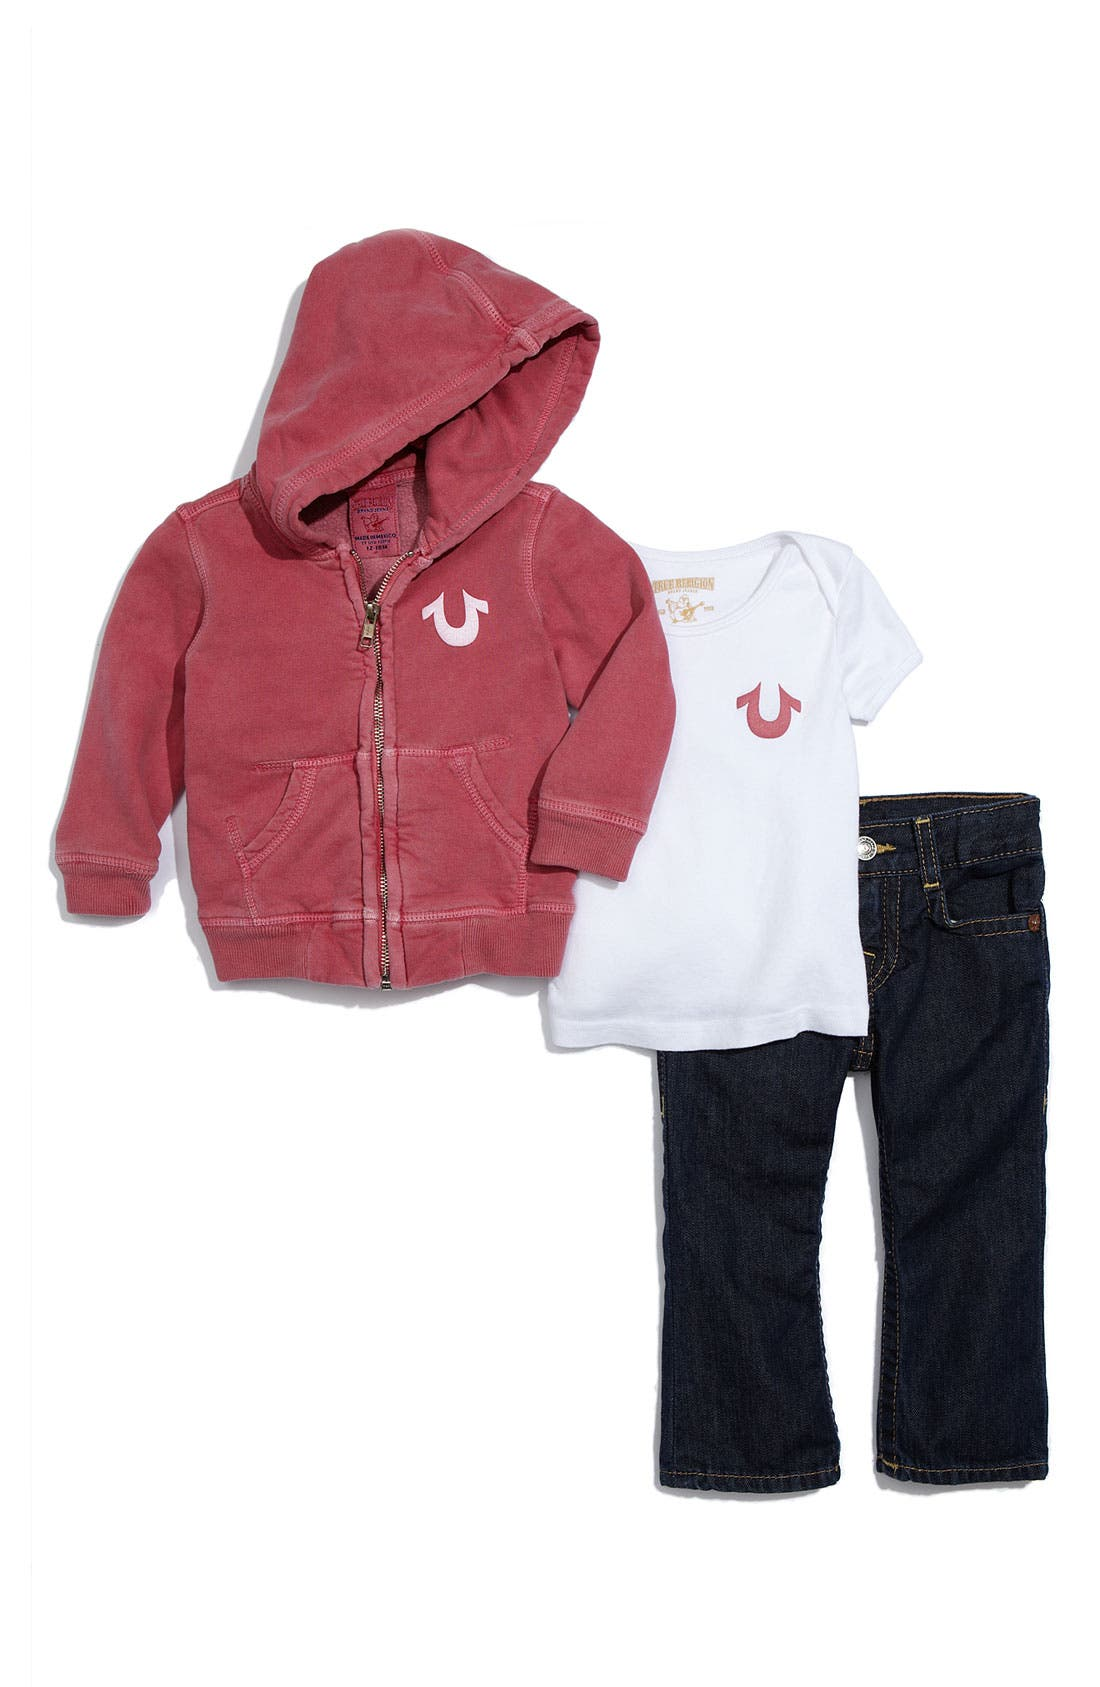 Main Image - True Religion Brand Jeans 3-Piece Gift Set (Infant)